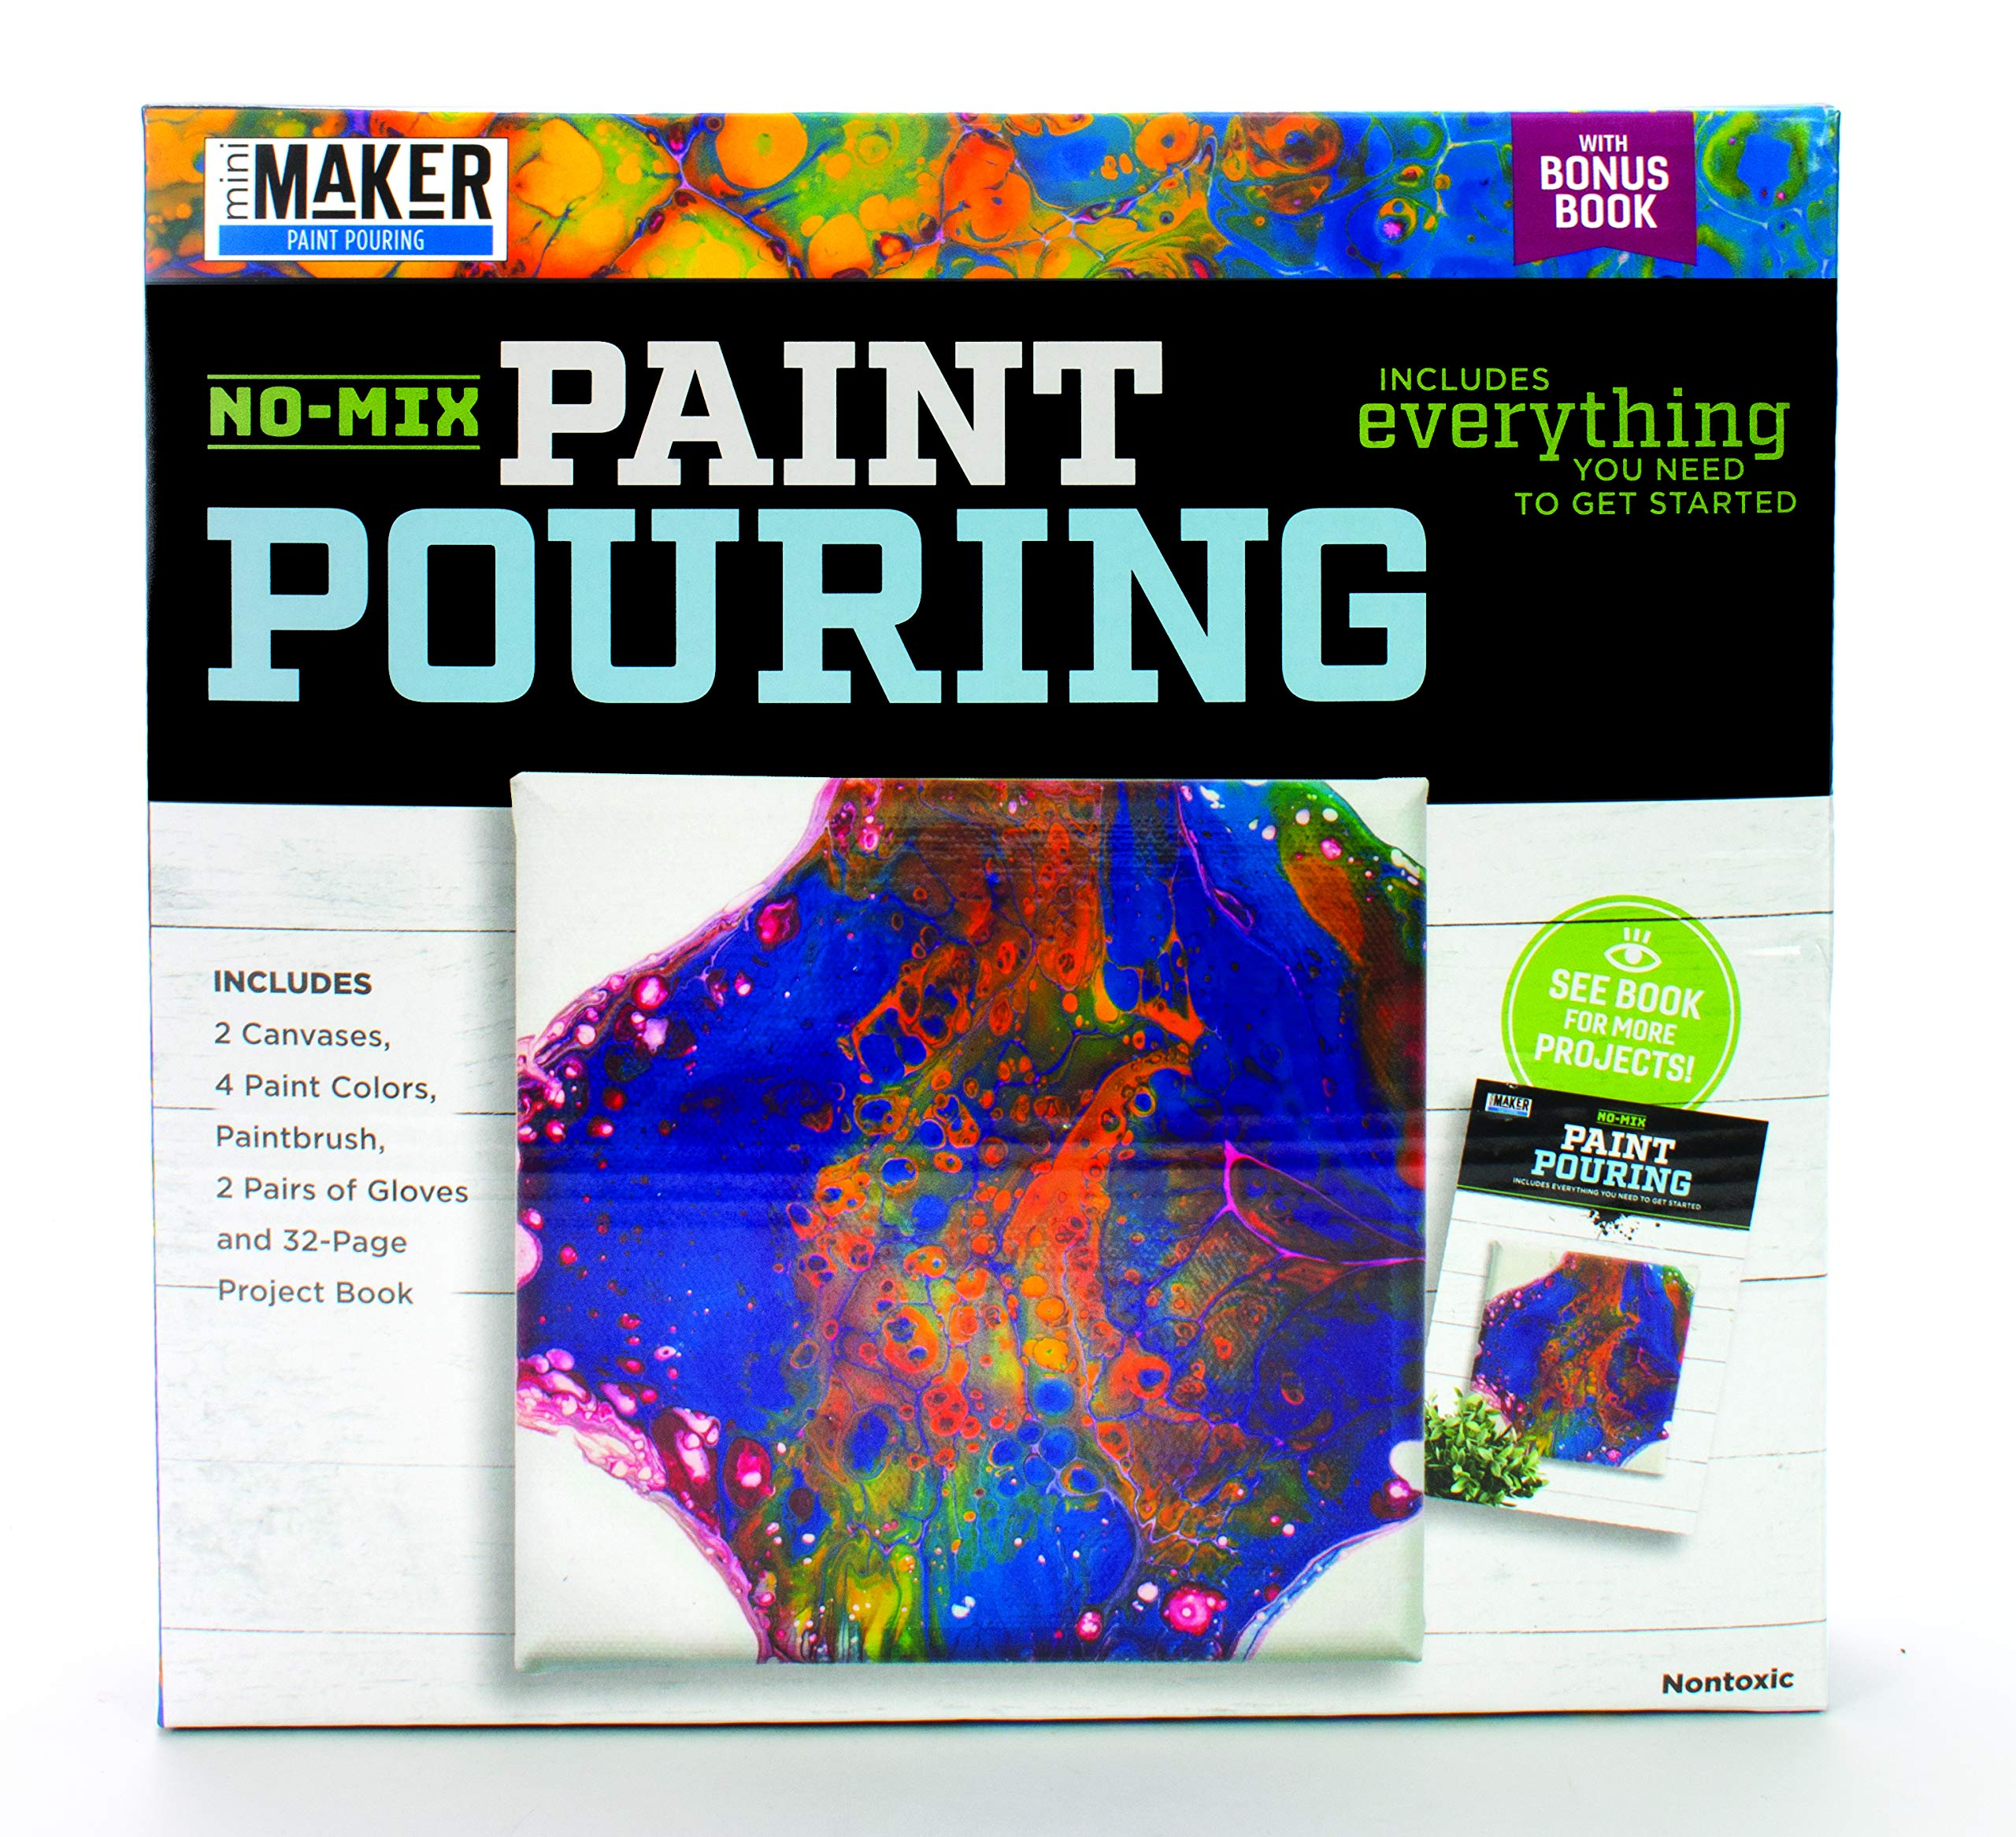 no mix painting pouring book plus kit includes 2 canvases 4 paint colors paintbrush 2 pairs of gloves and 32 page project book